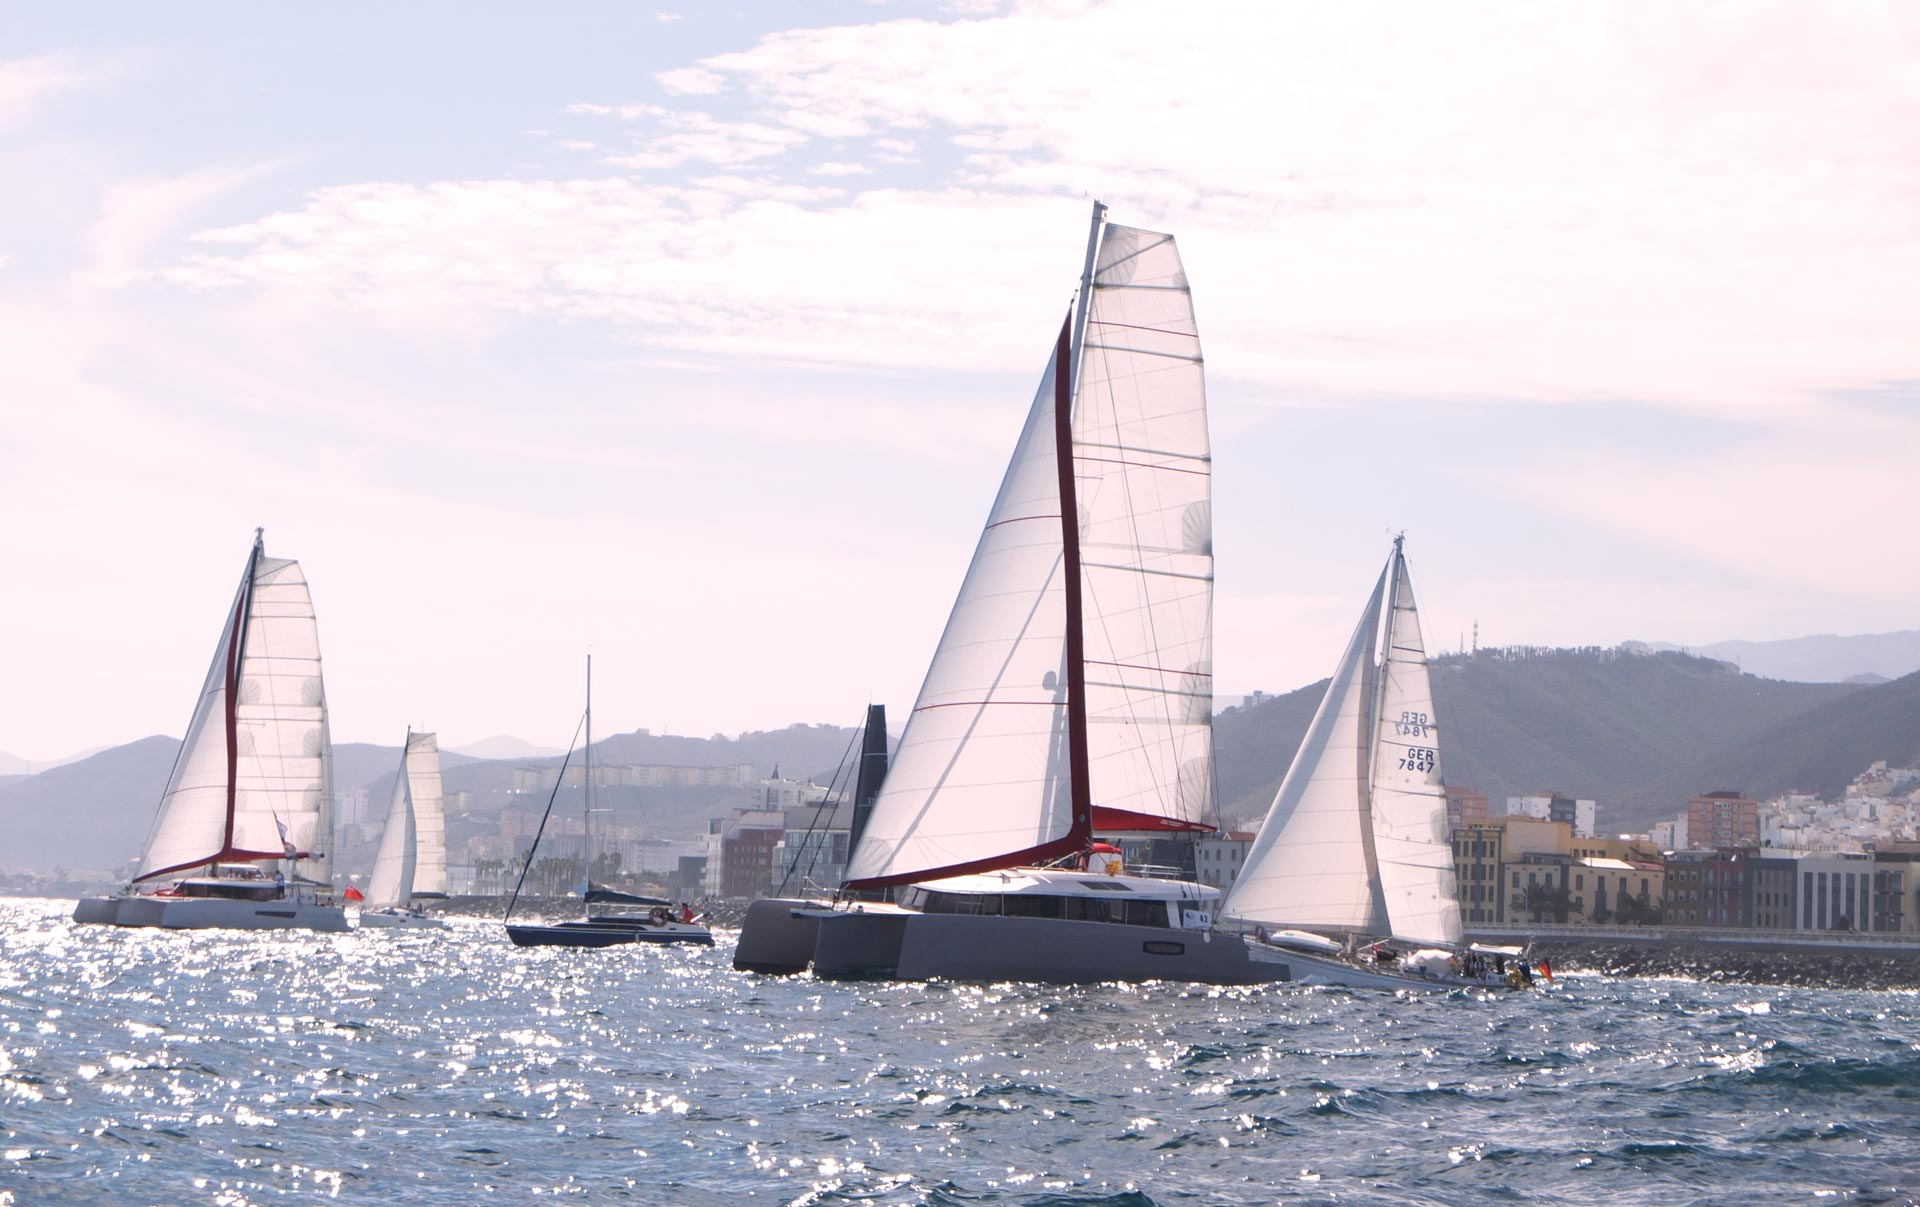 Two NEEL trimarans take the start of the ARC 2020